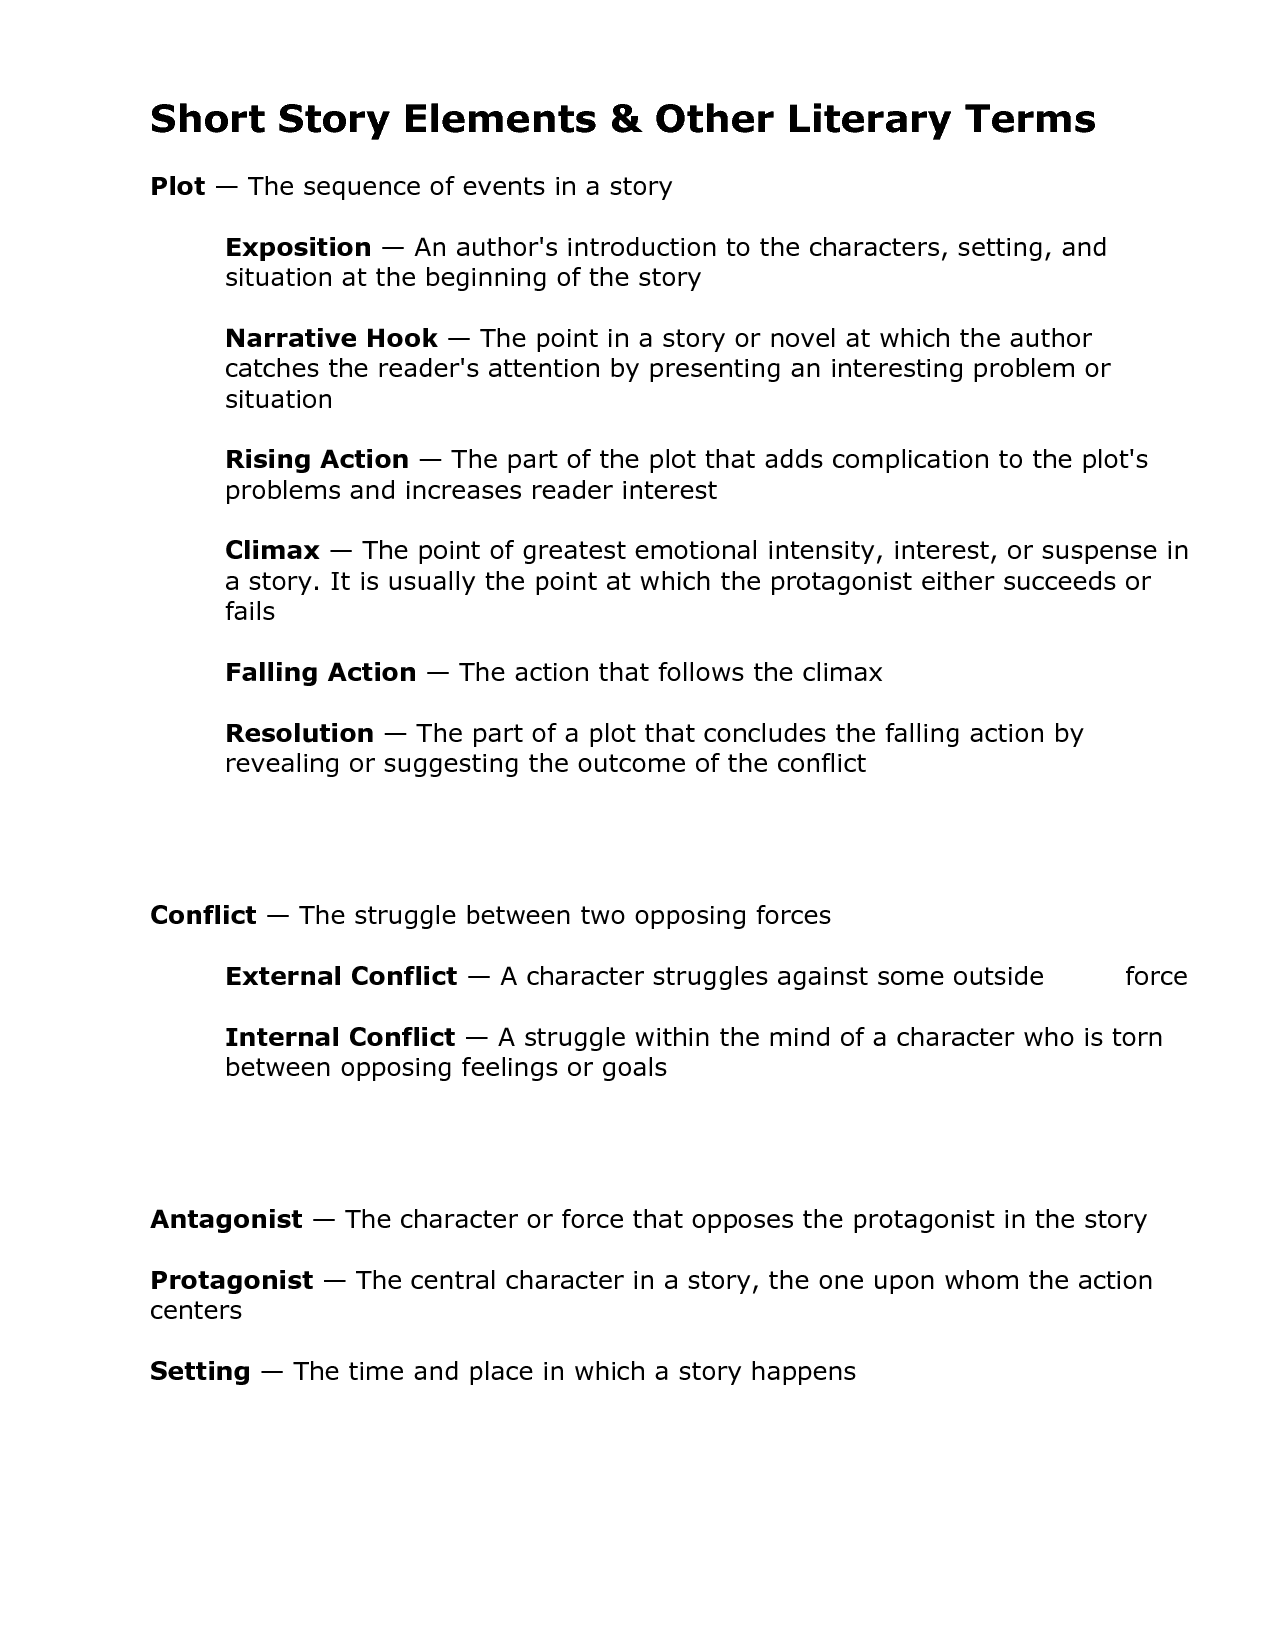 Worksheets Literary Terms Worksheet elements of literature setting short story other literary terms